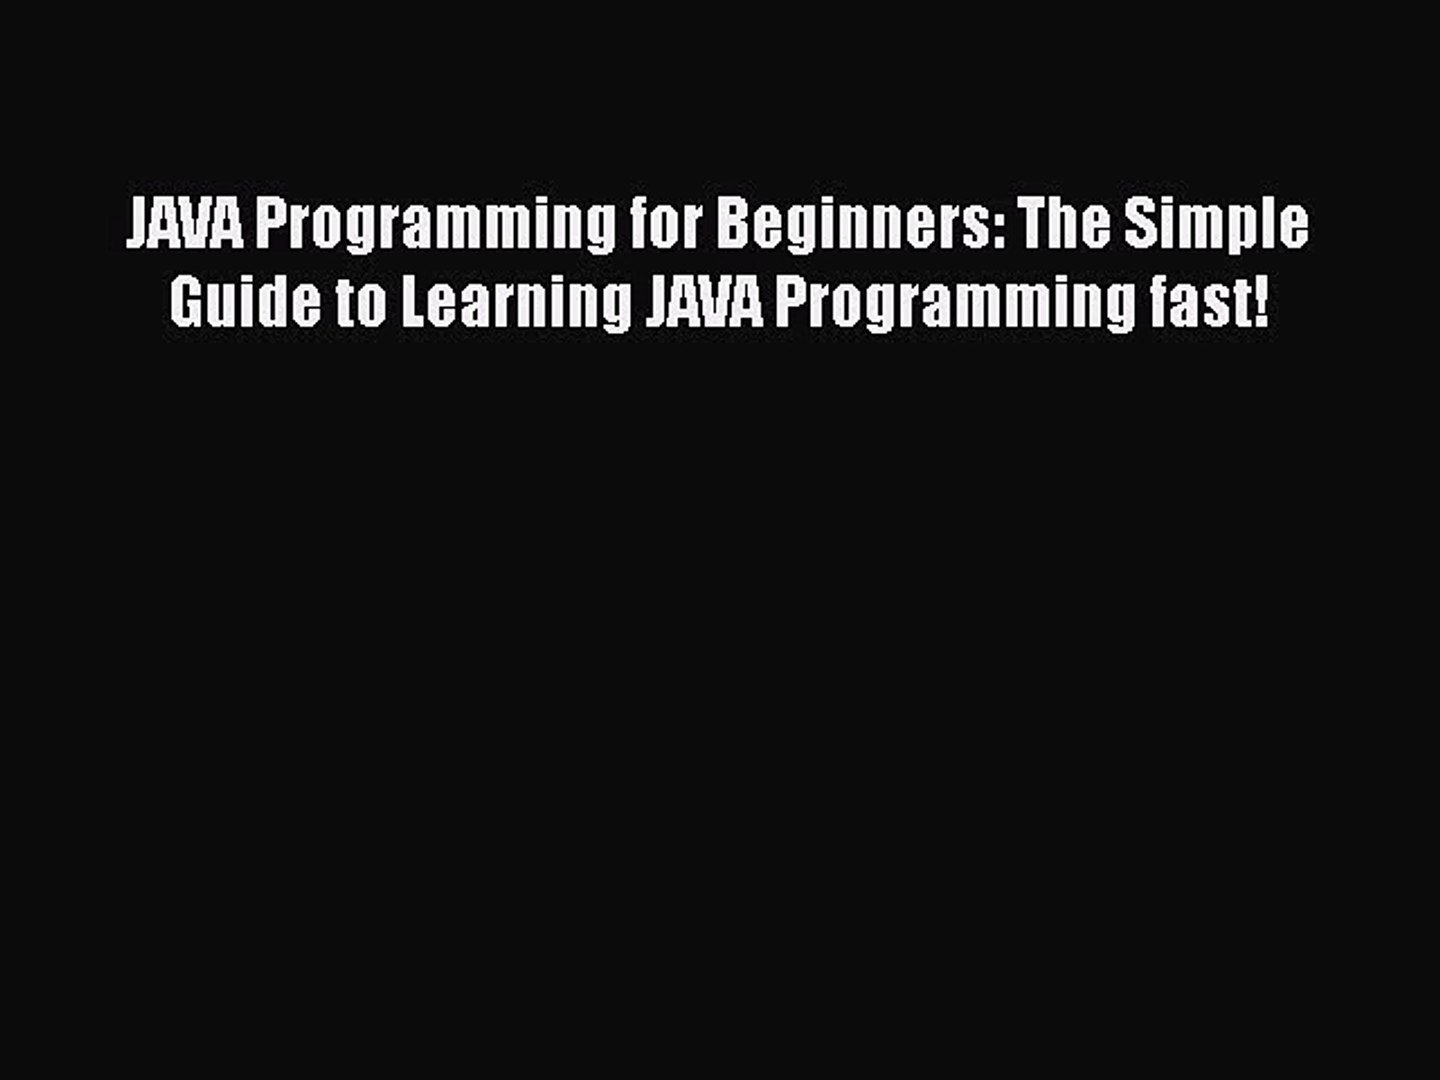 Read JAVA Programming for Beginners: The Simple Guide to Learning JAVA Programming fast! Ebook